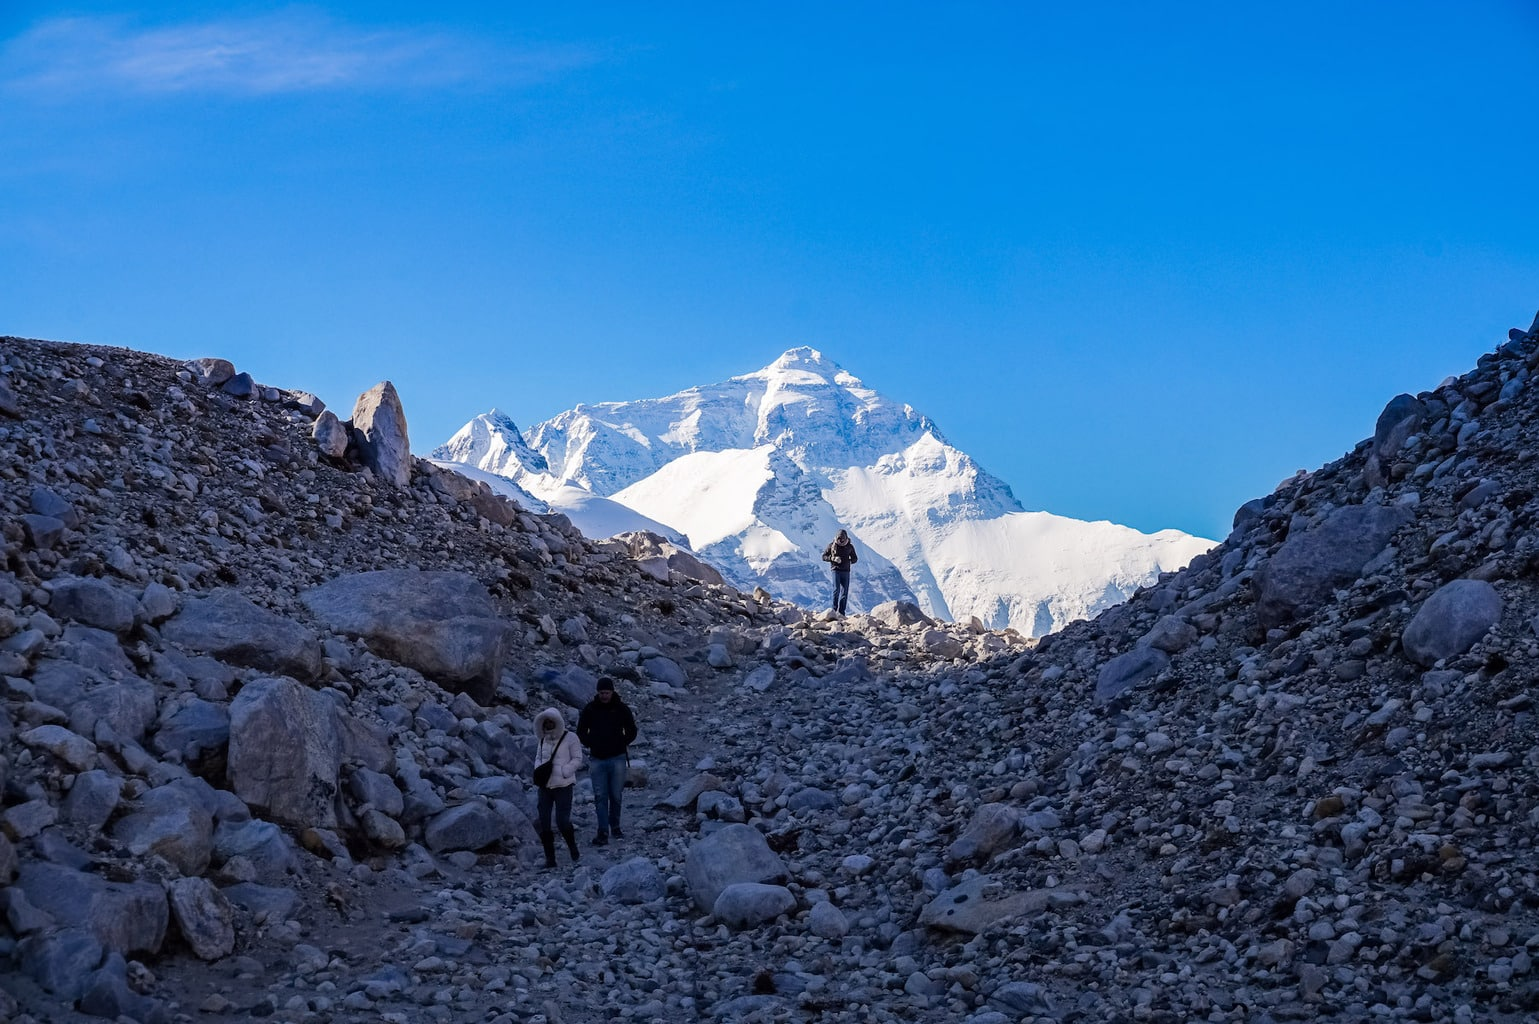 Trekking down from Everest